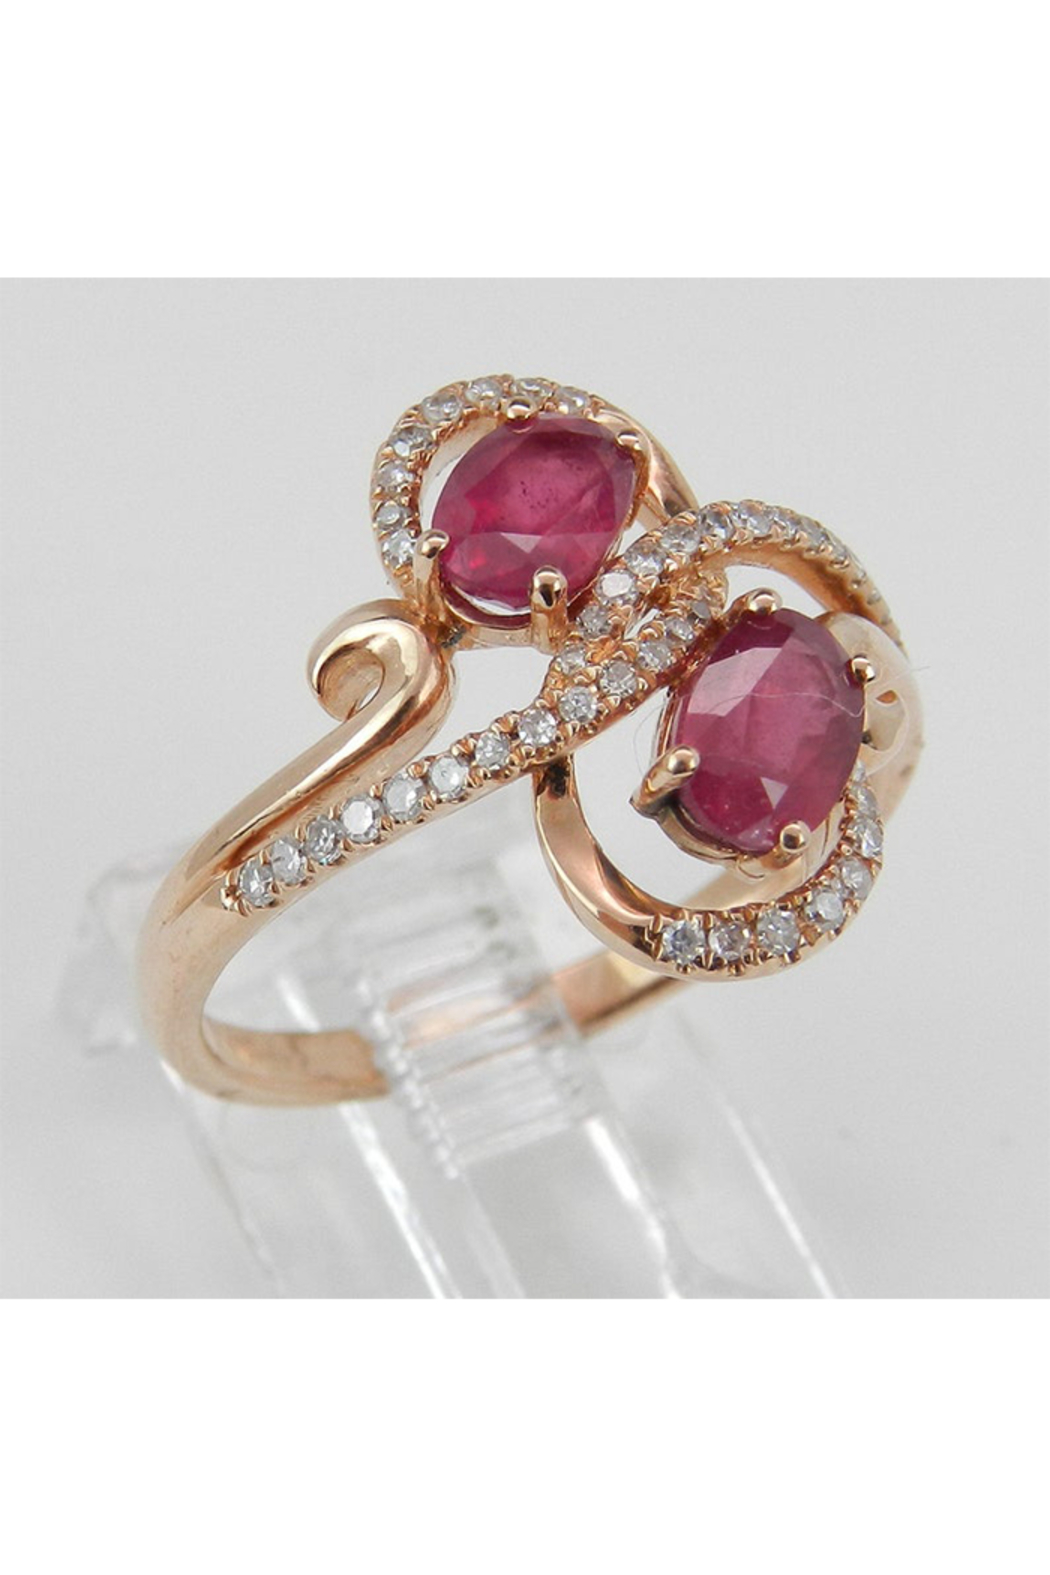 Margolin & Co 14K Rose Gold 1.40 ct Diamond and Ruby Cocktail Ring, Two Stone Right Hand Ring, Size 7, July Gemstone - Front Full Image